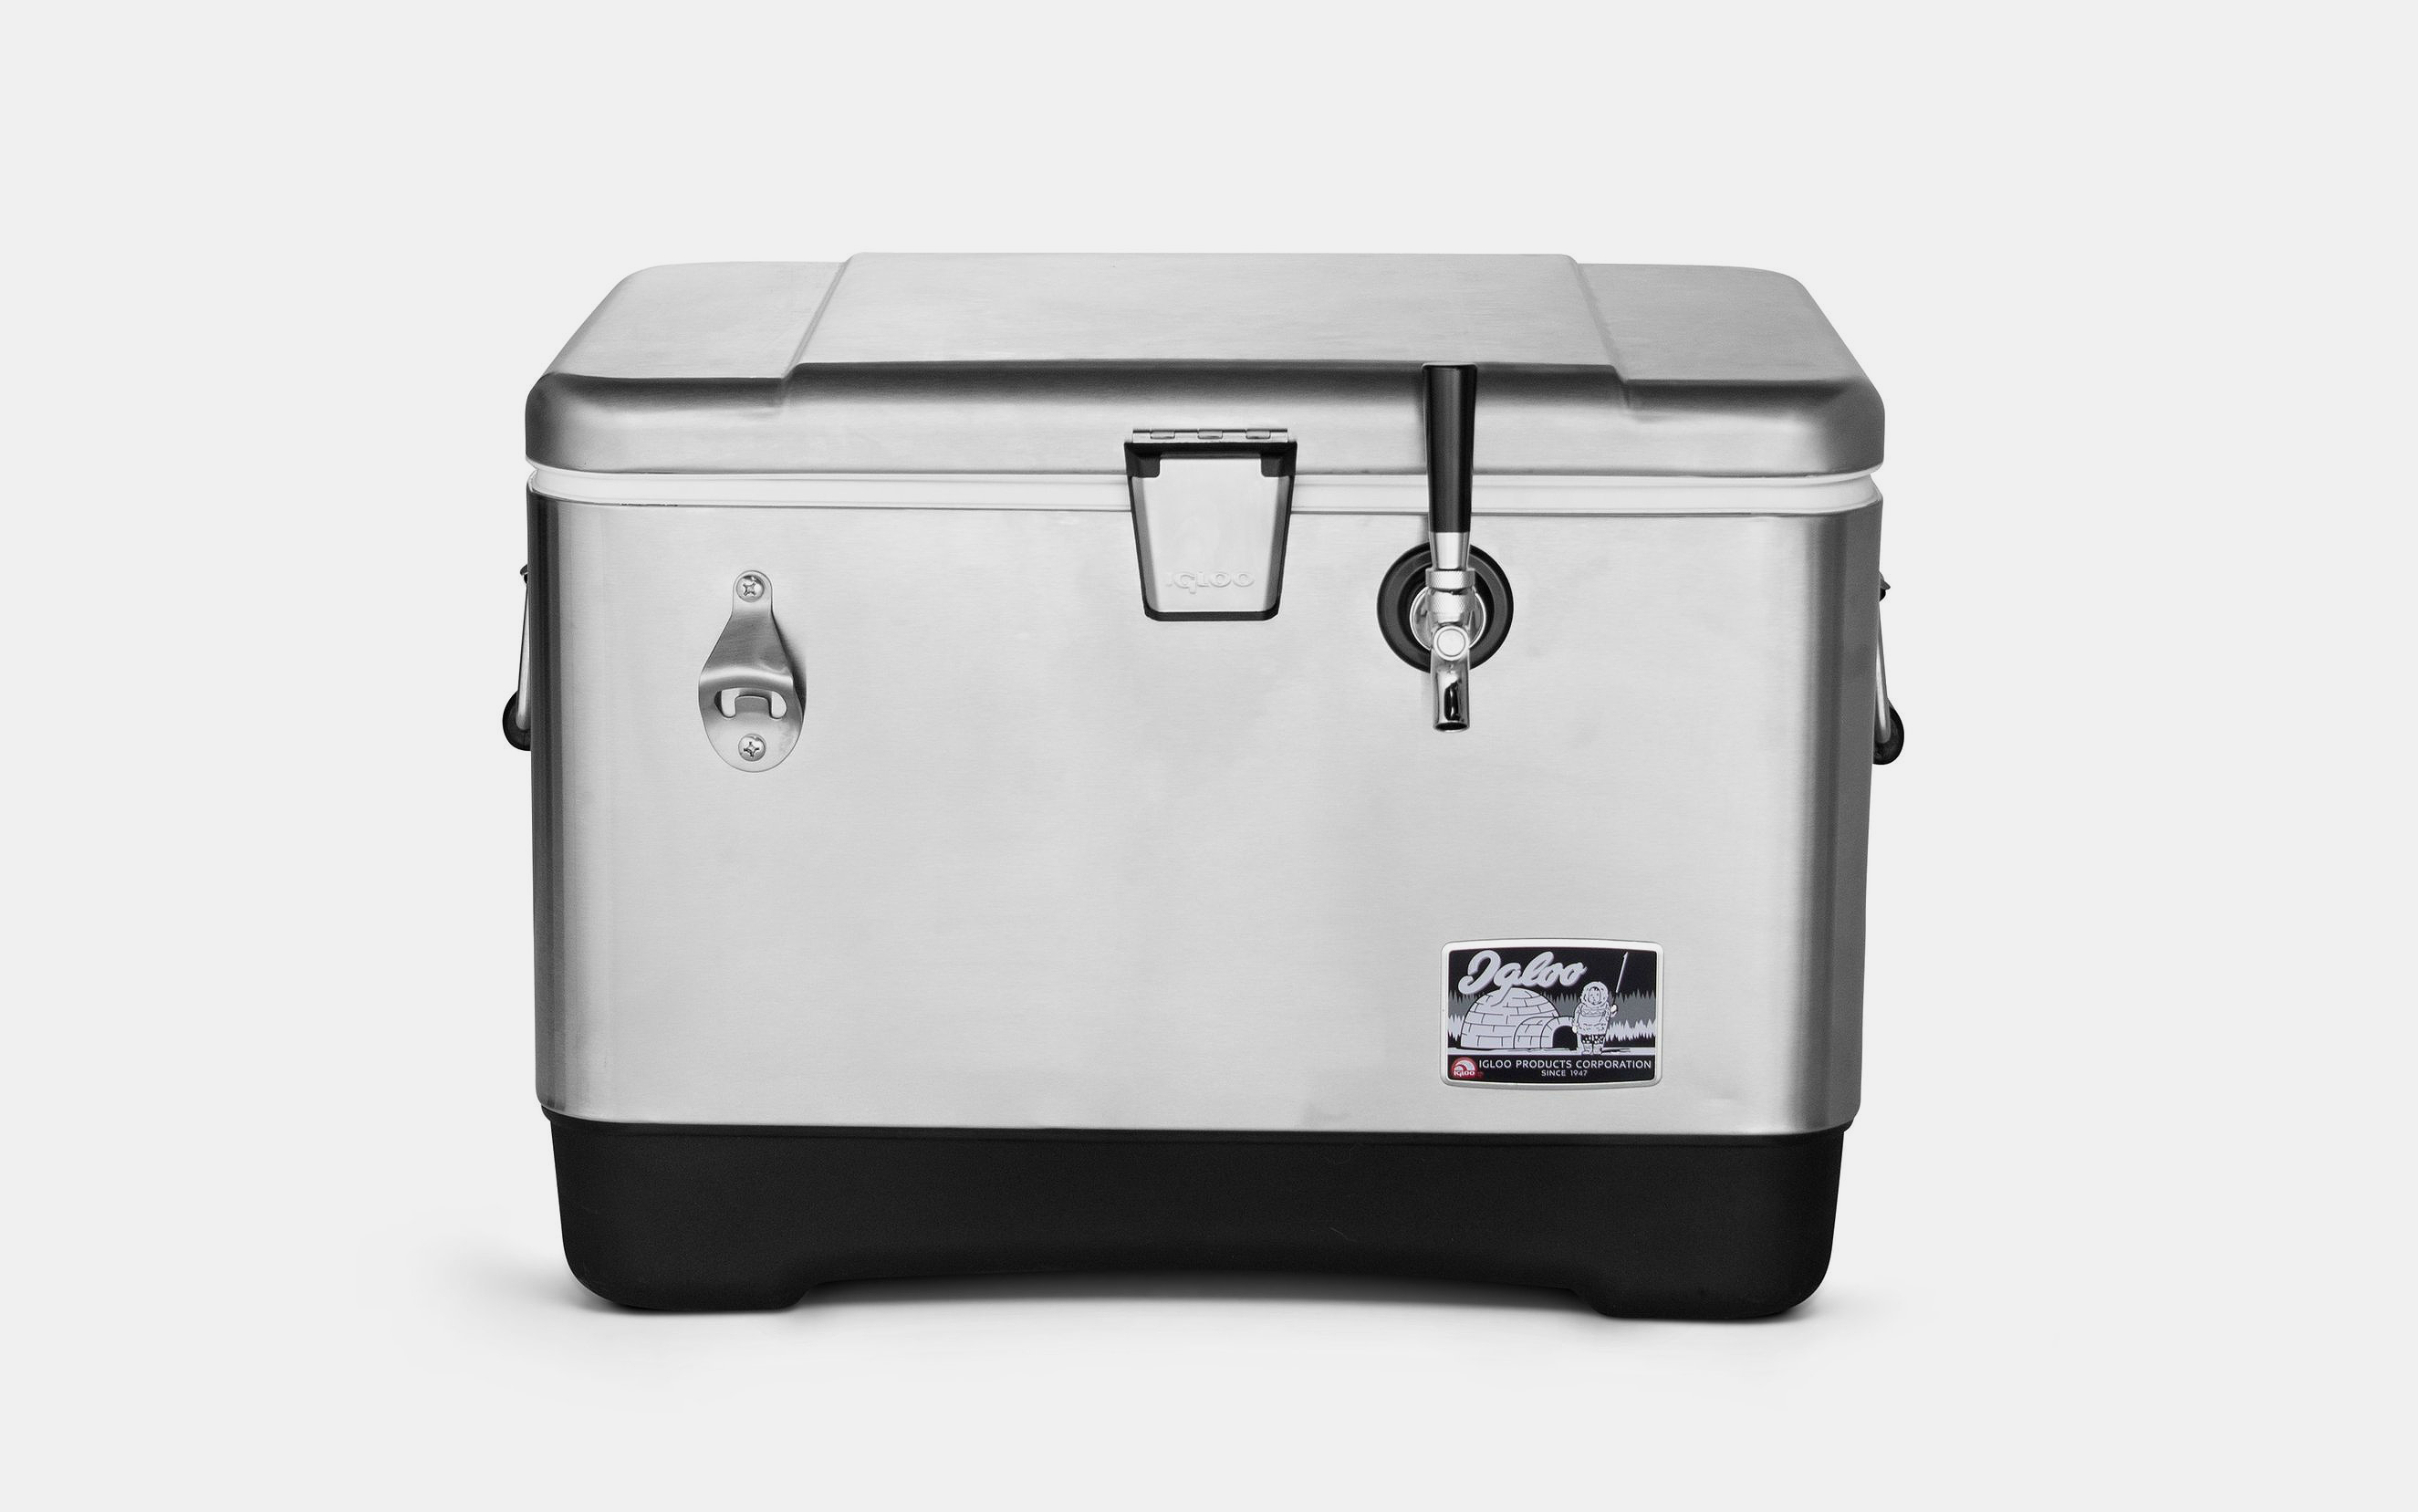 Igloo Kegmate Jockey Box Cooler